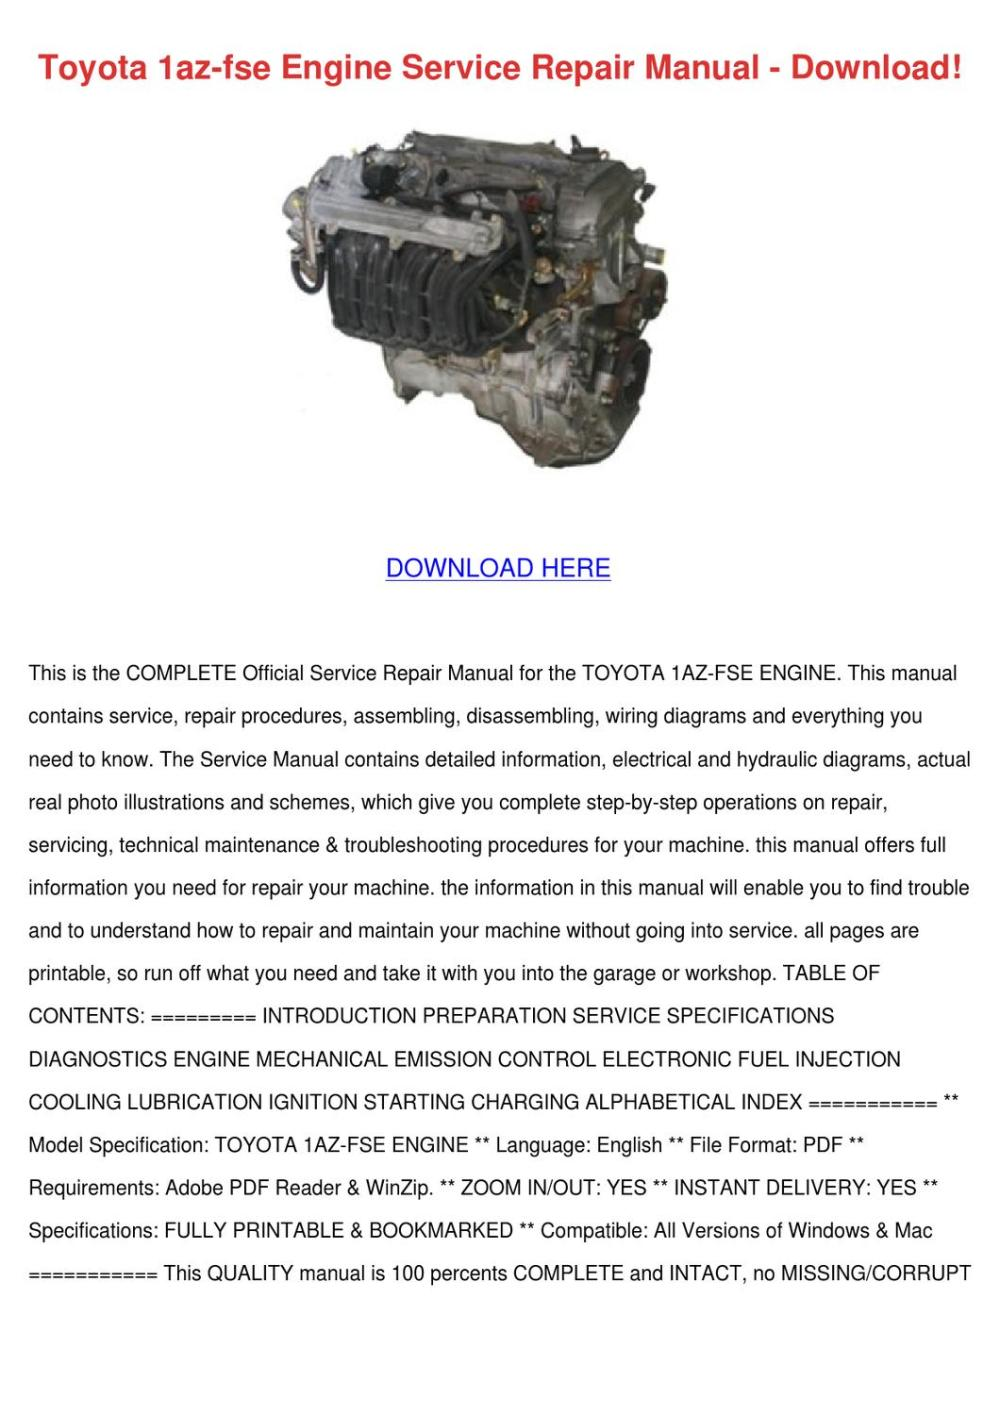 medium resolution of toyota 1az fse engine service repair manual d by nolaoconnor issuu